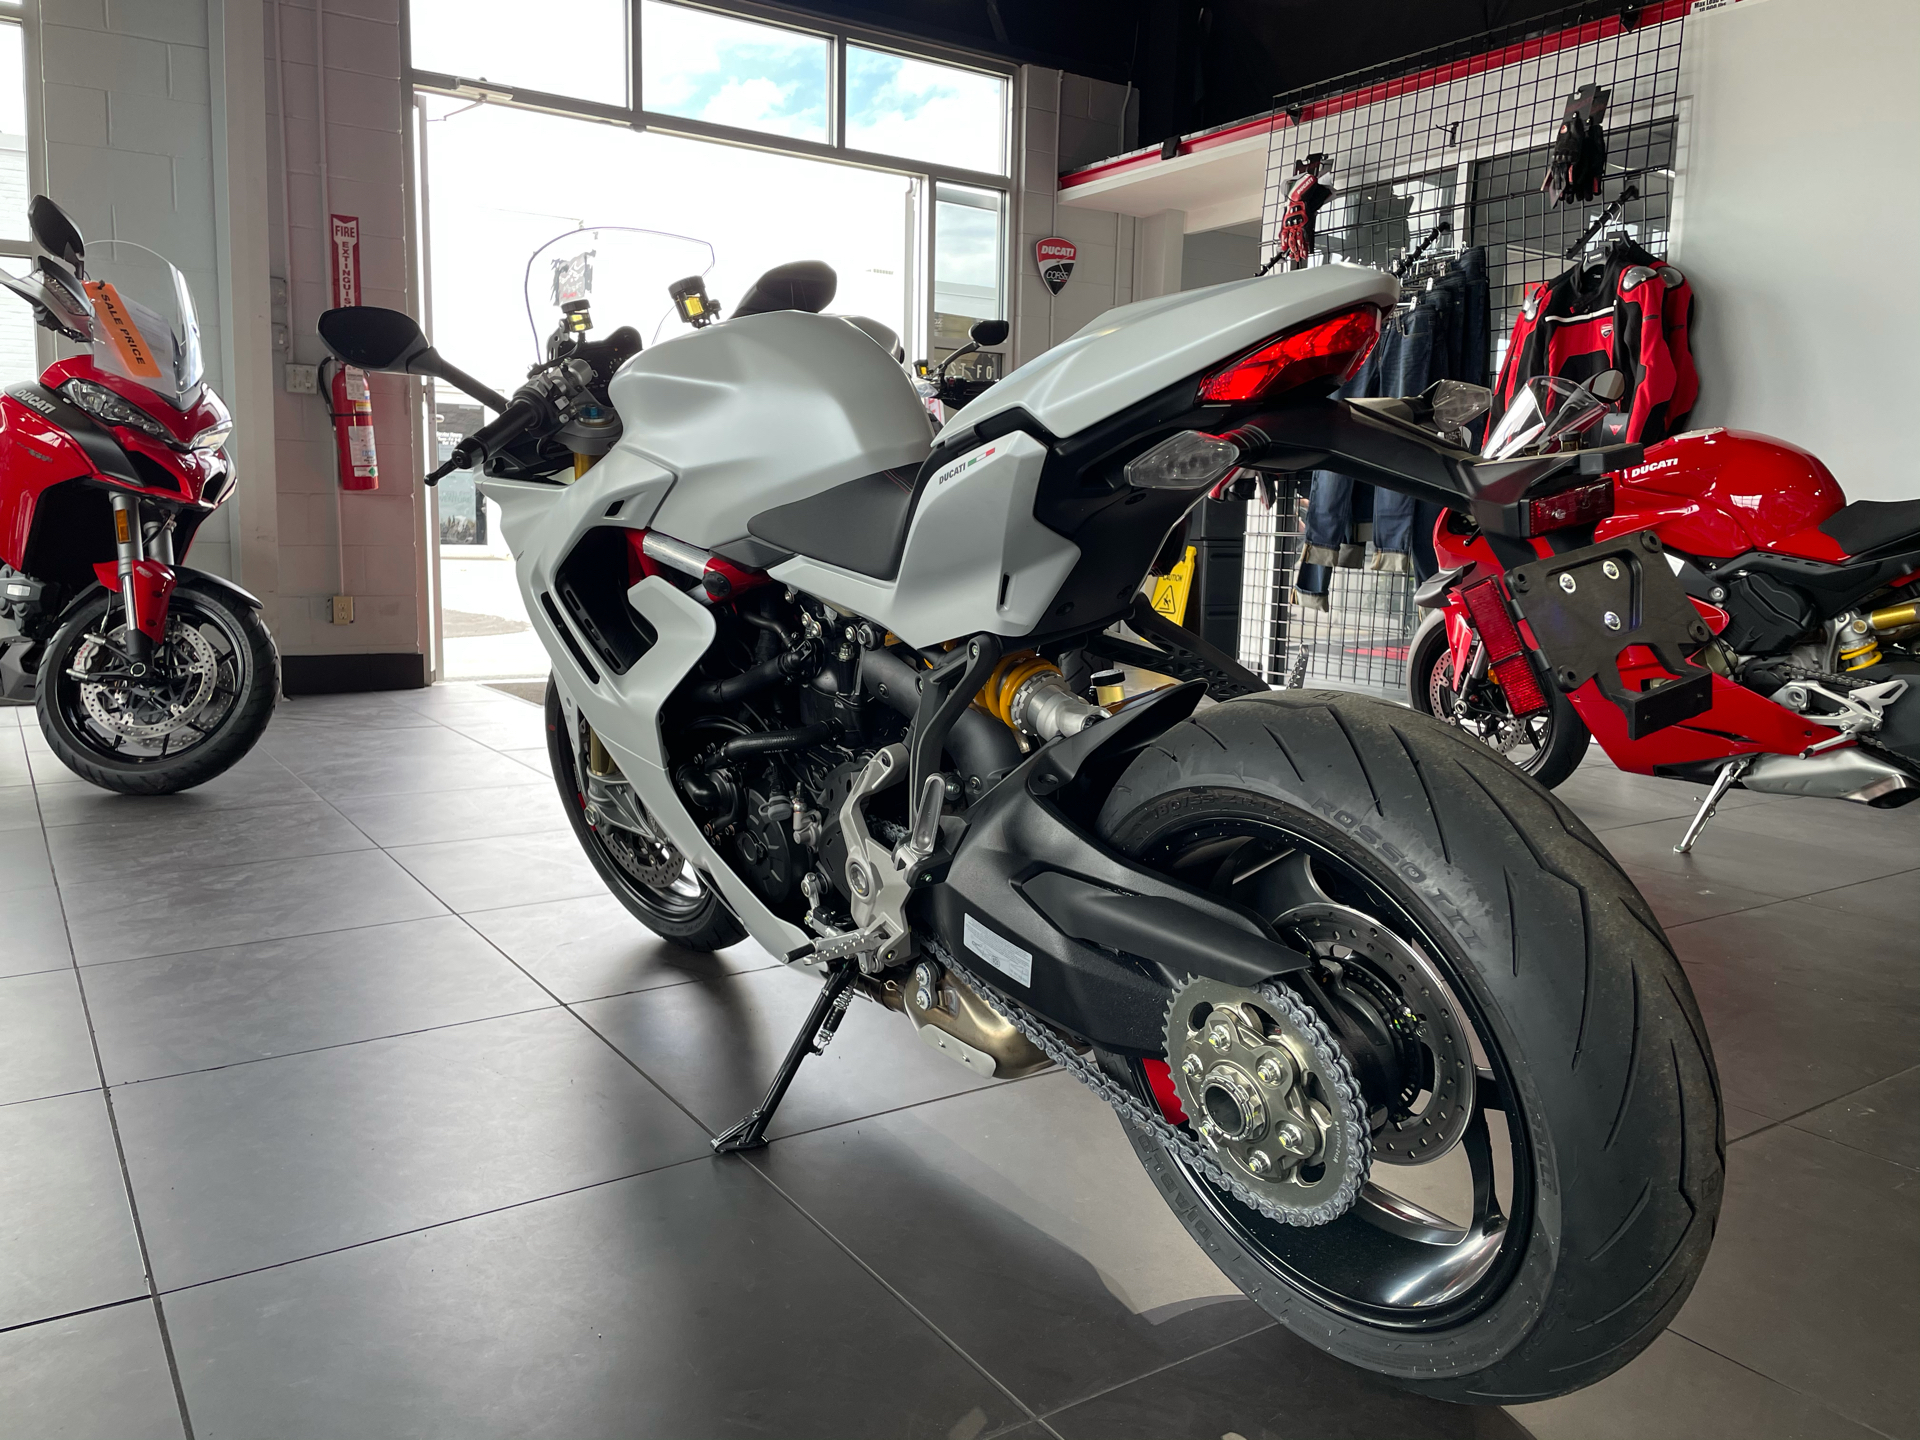 2021 Ducati SuperSport 950 S in Greenville, South Carolina - Photo 5